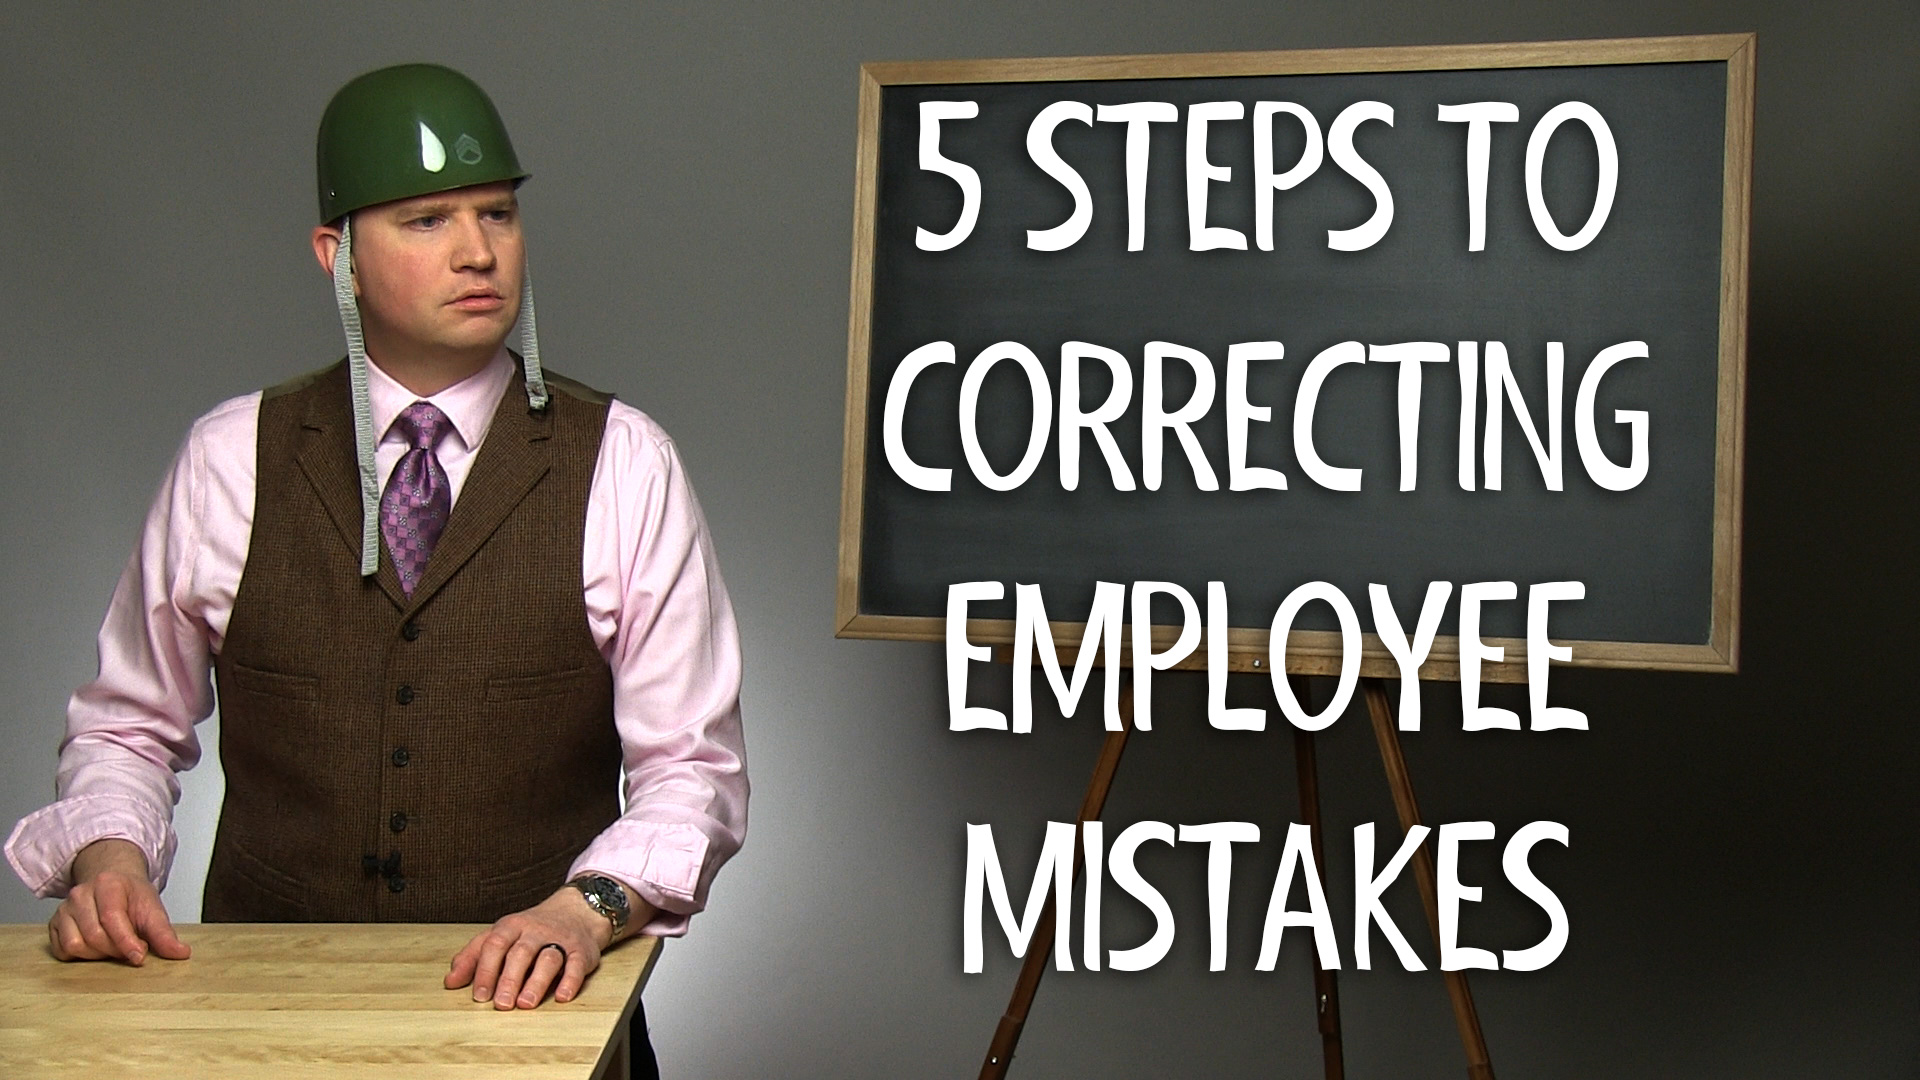 5 Steps to Correcting Employee Mistakes